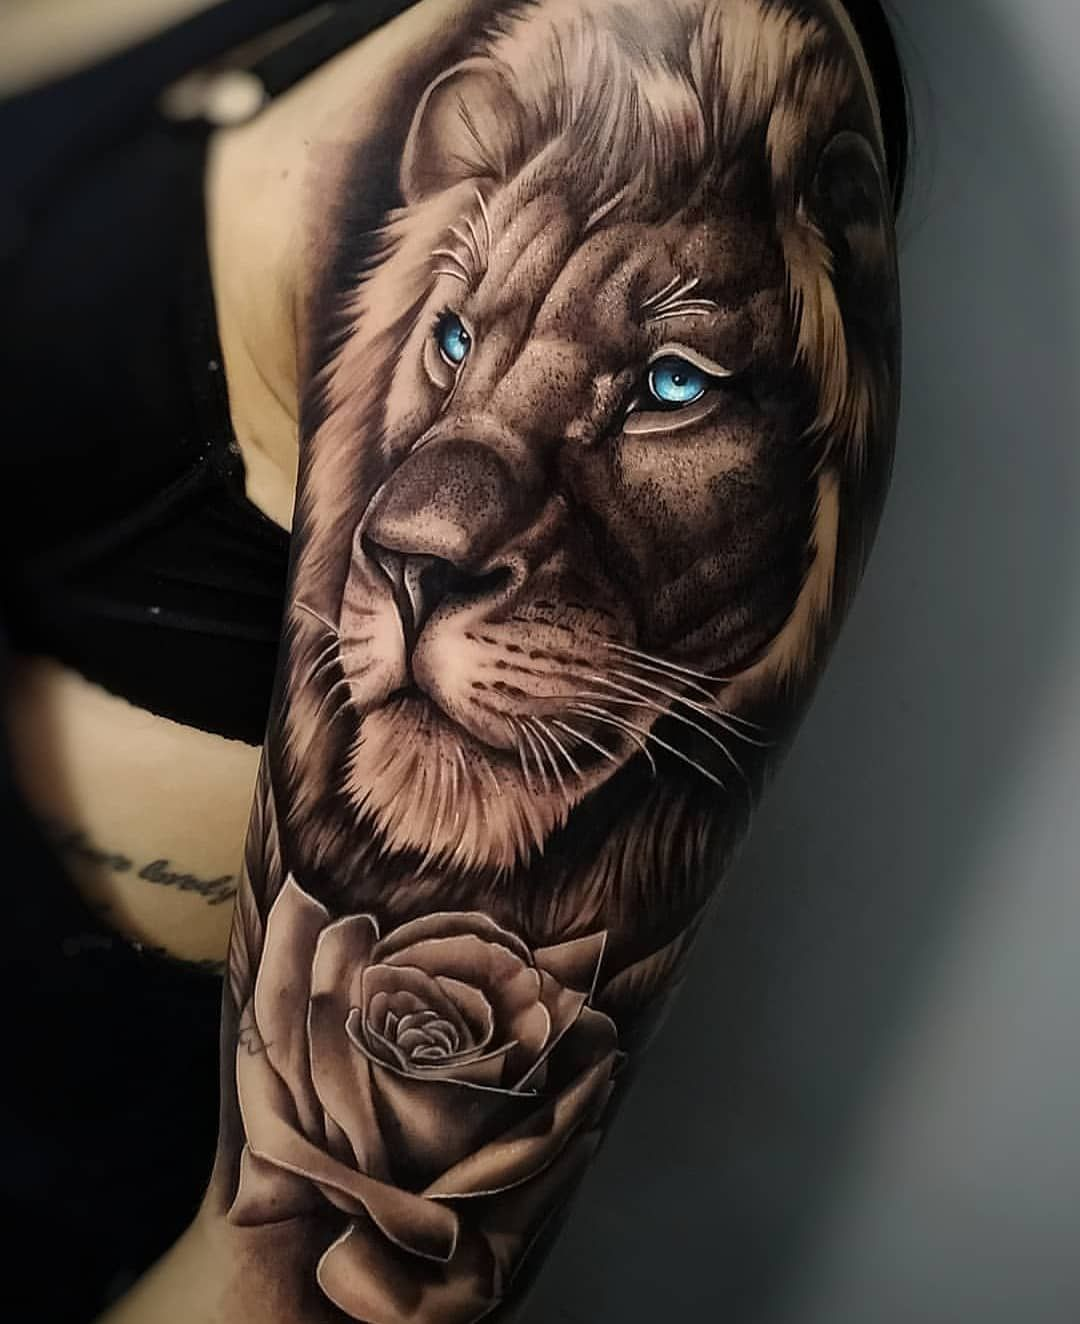 Photo of Tattoo models and designs artist IG: @edipo_tattooist #tattoo #realistic #ink #inkedup #inked #t … #tattoo by @the_art_of_tattooing – artist